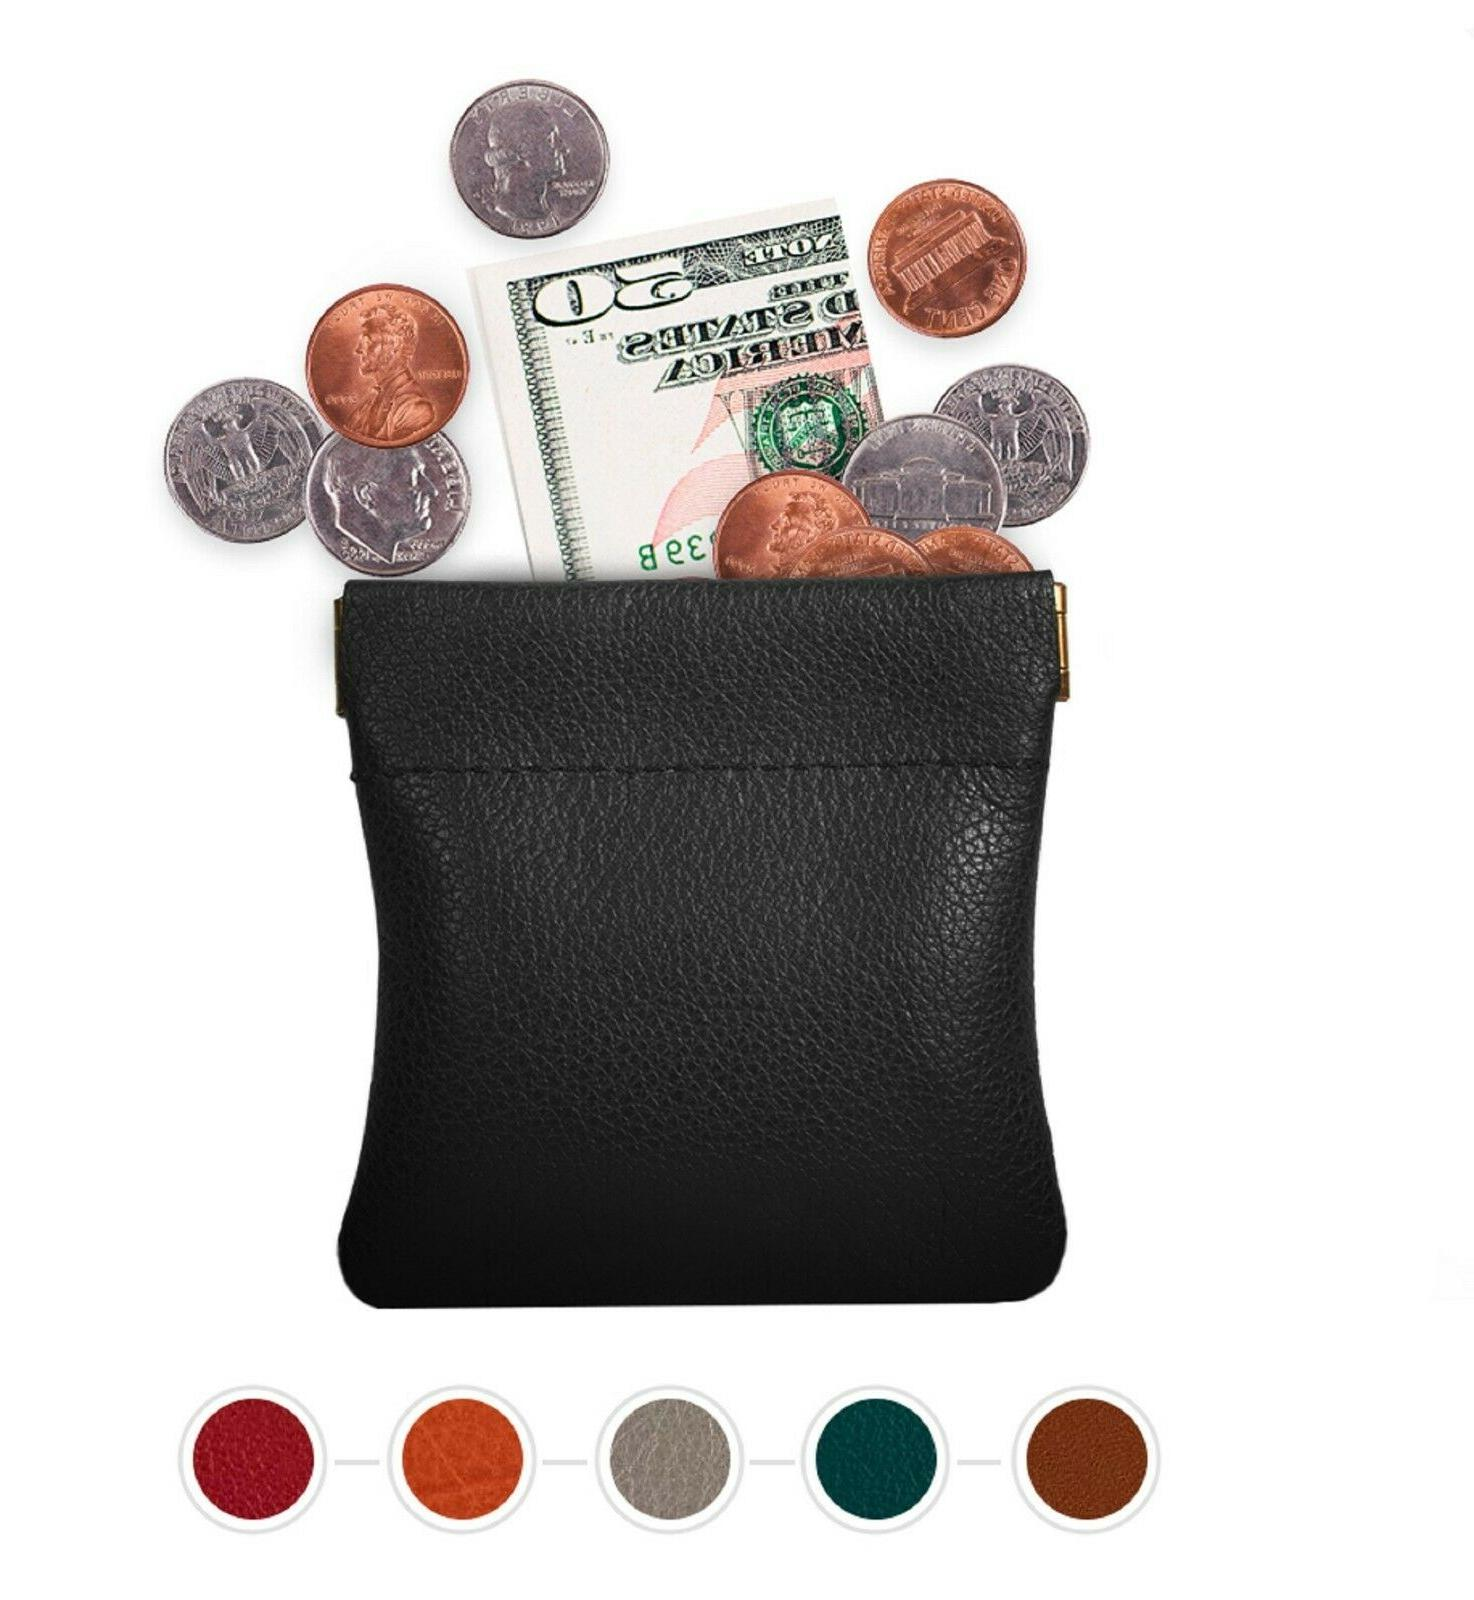 Leather Squeeze Coin Pouch Coin Purse Change Holder For Mens